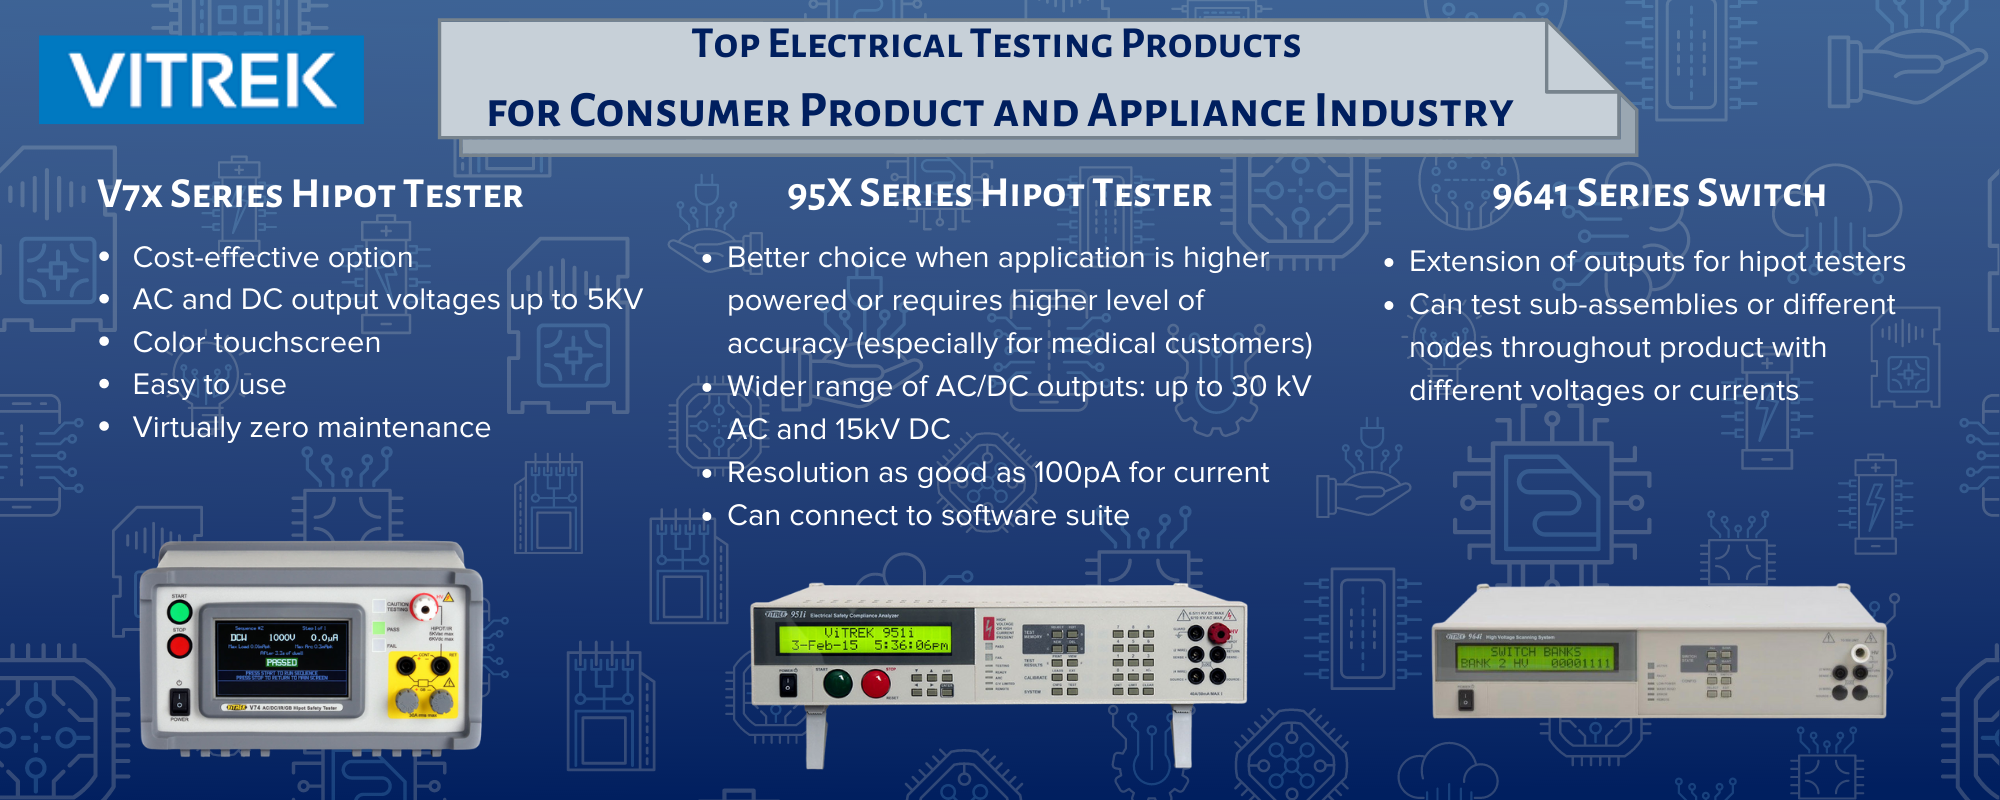 Infographic comparing Vitrek's electrical testing products